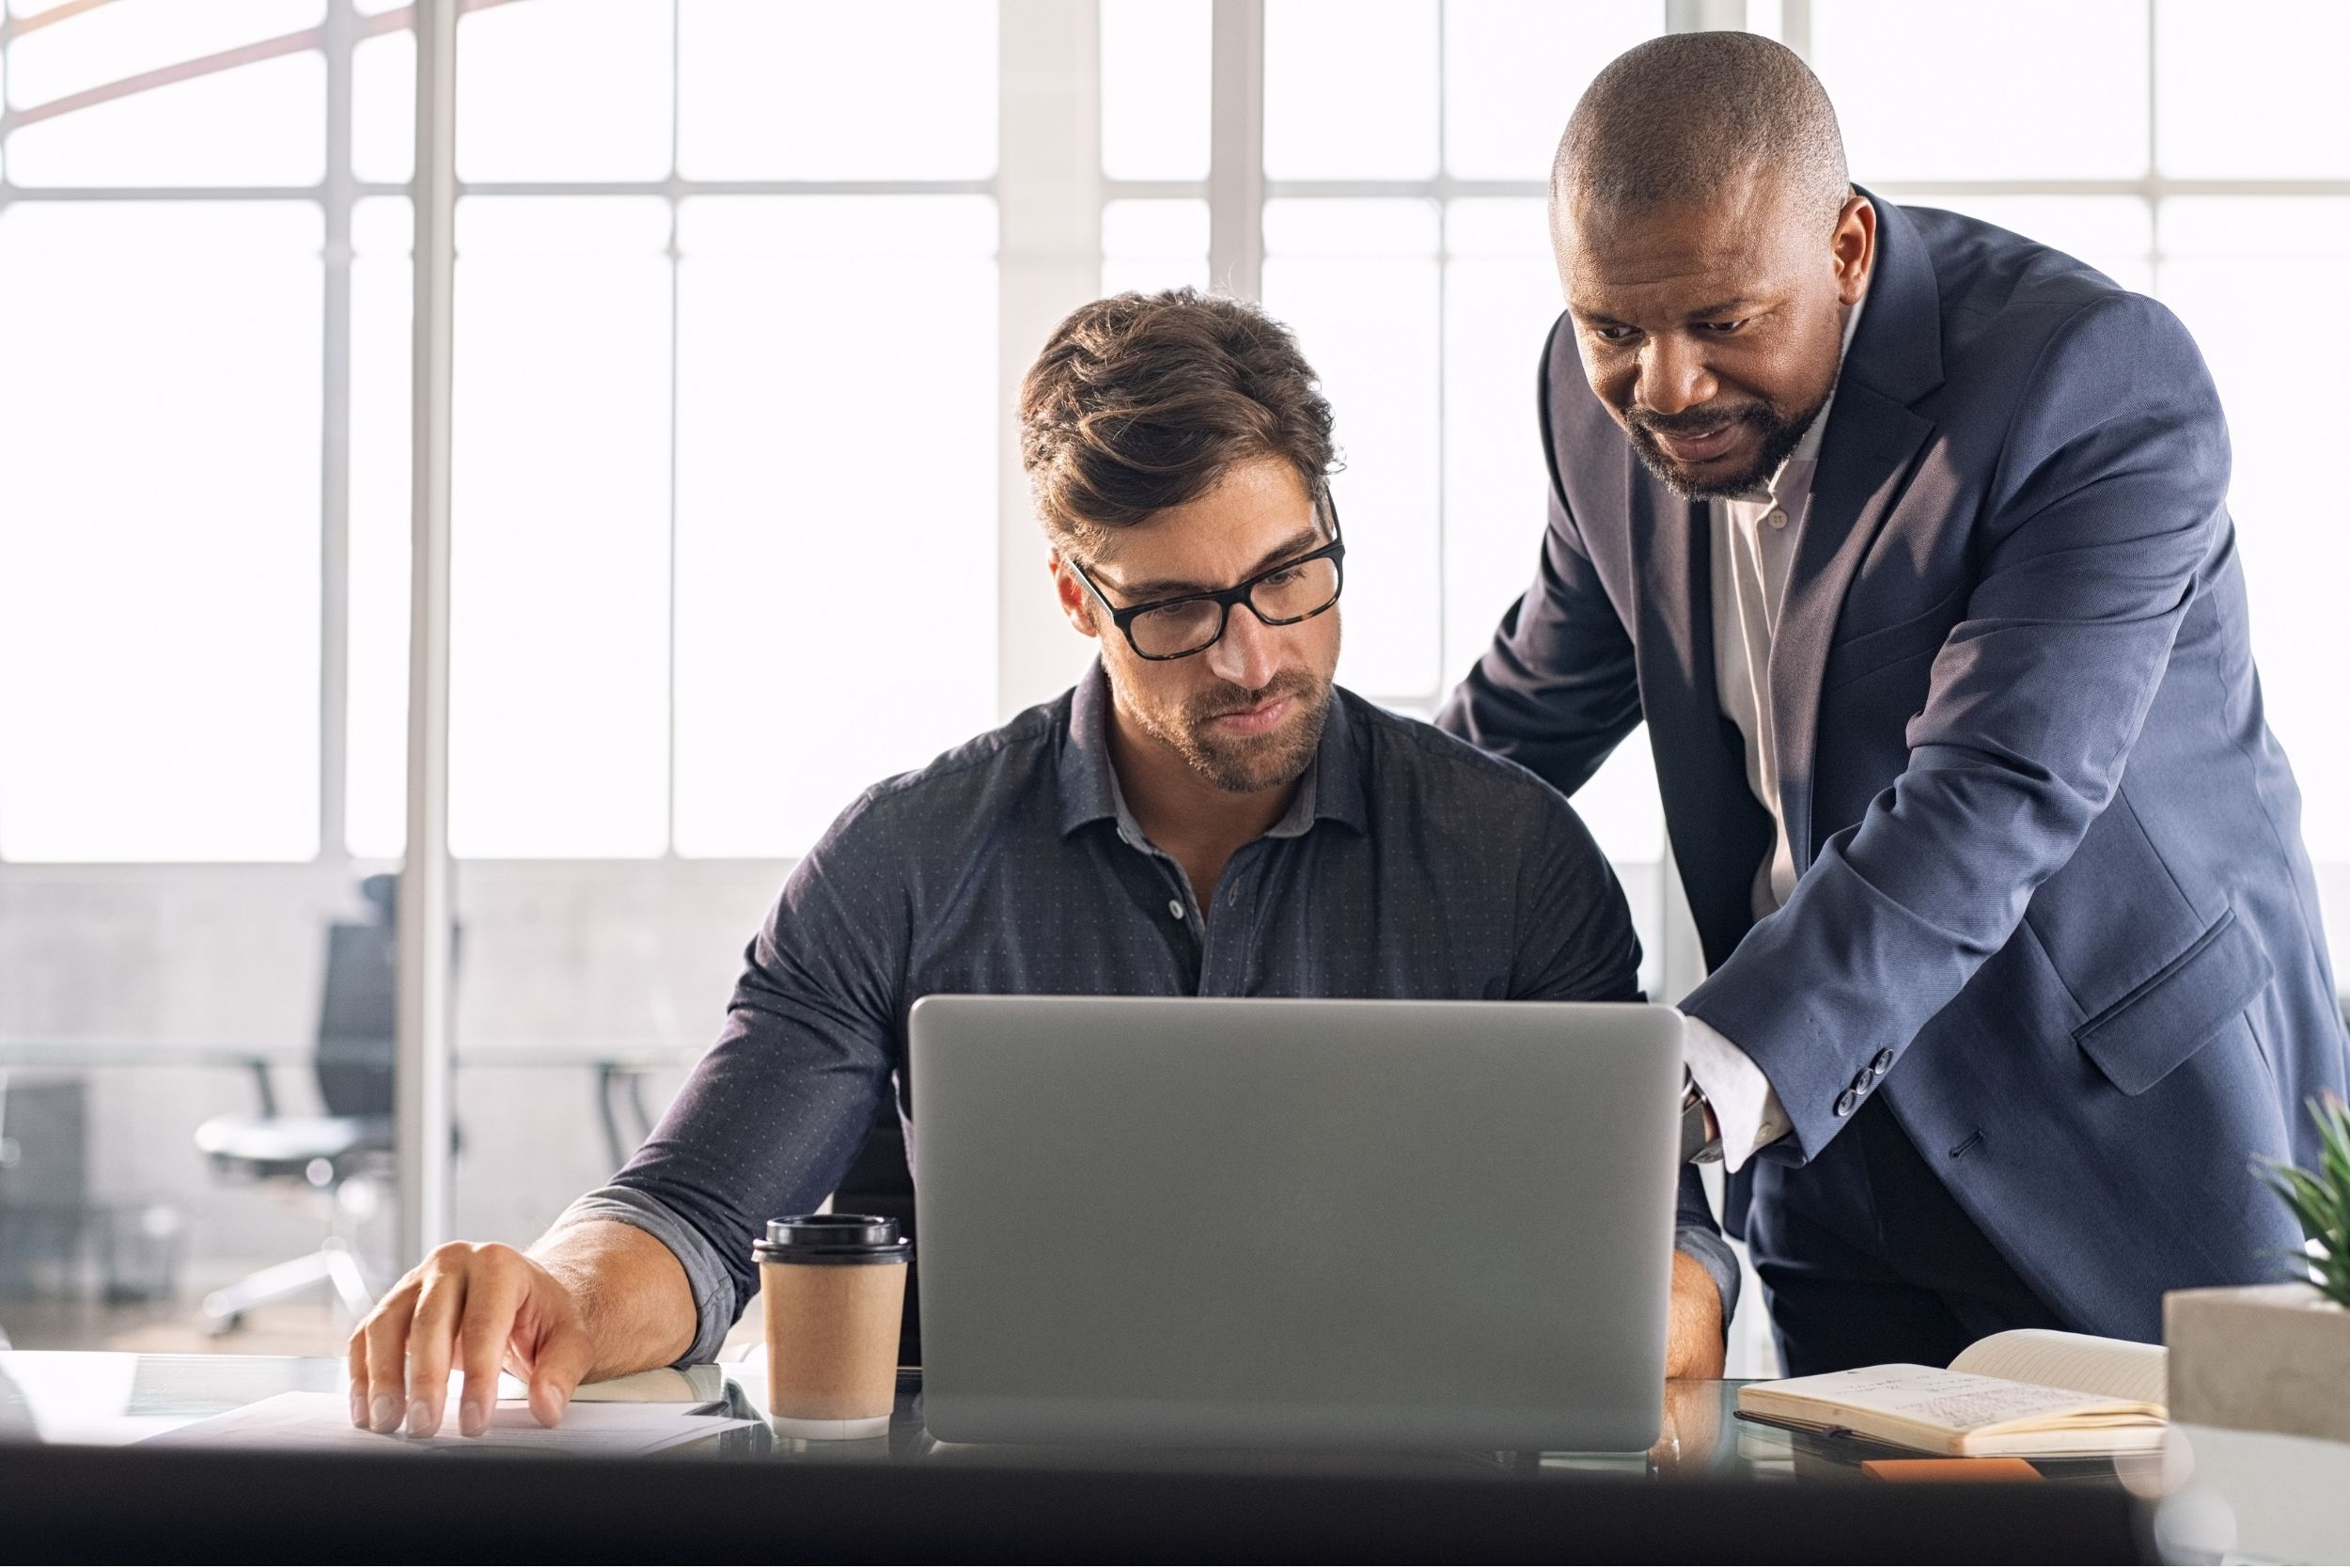 Two Men looking at improving workforce management on a laptop